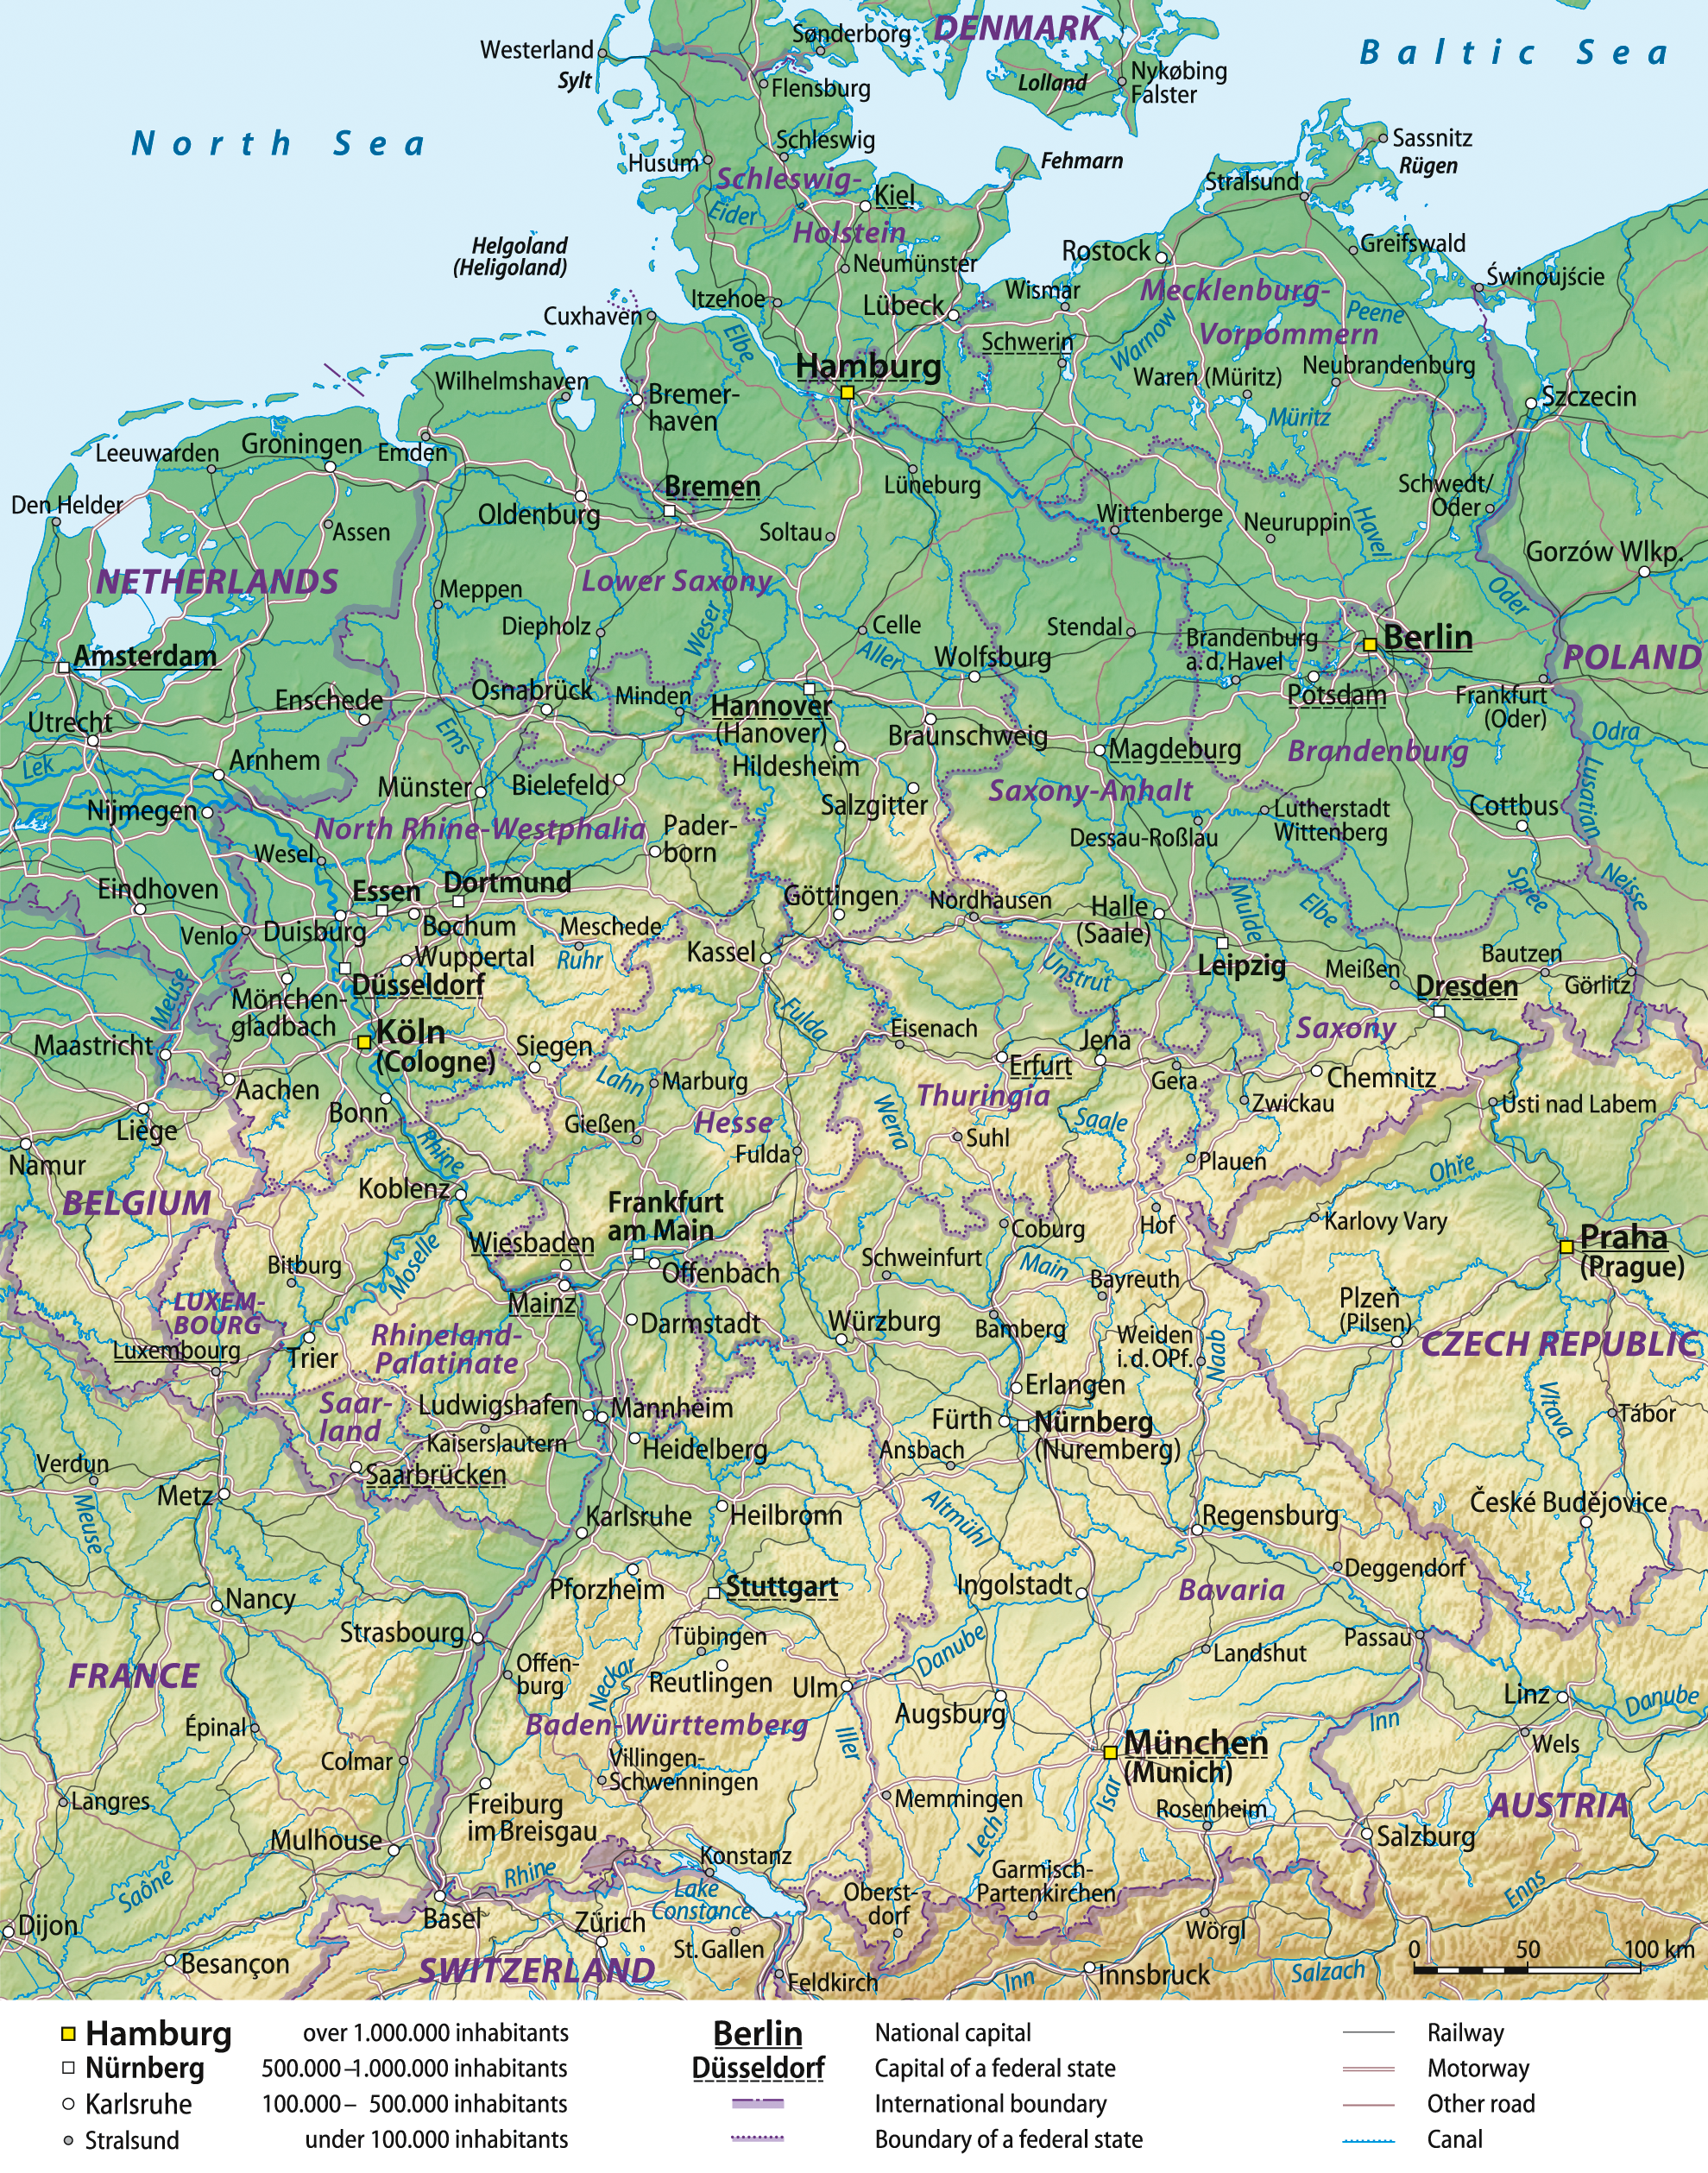 kart over tyskland map File:Germany general map.png   Wikipedia kart over tyskland map